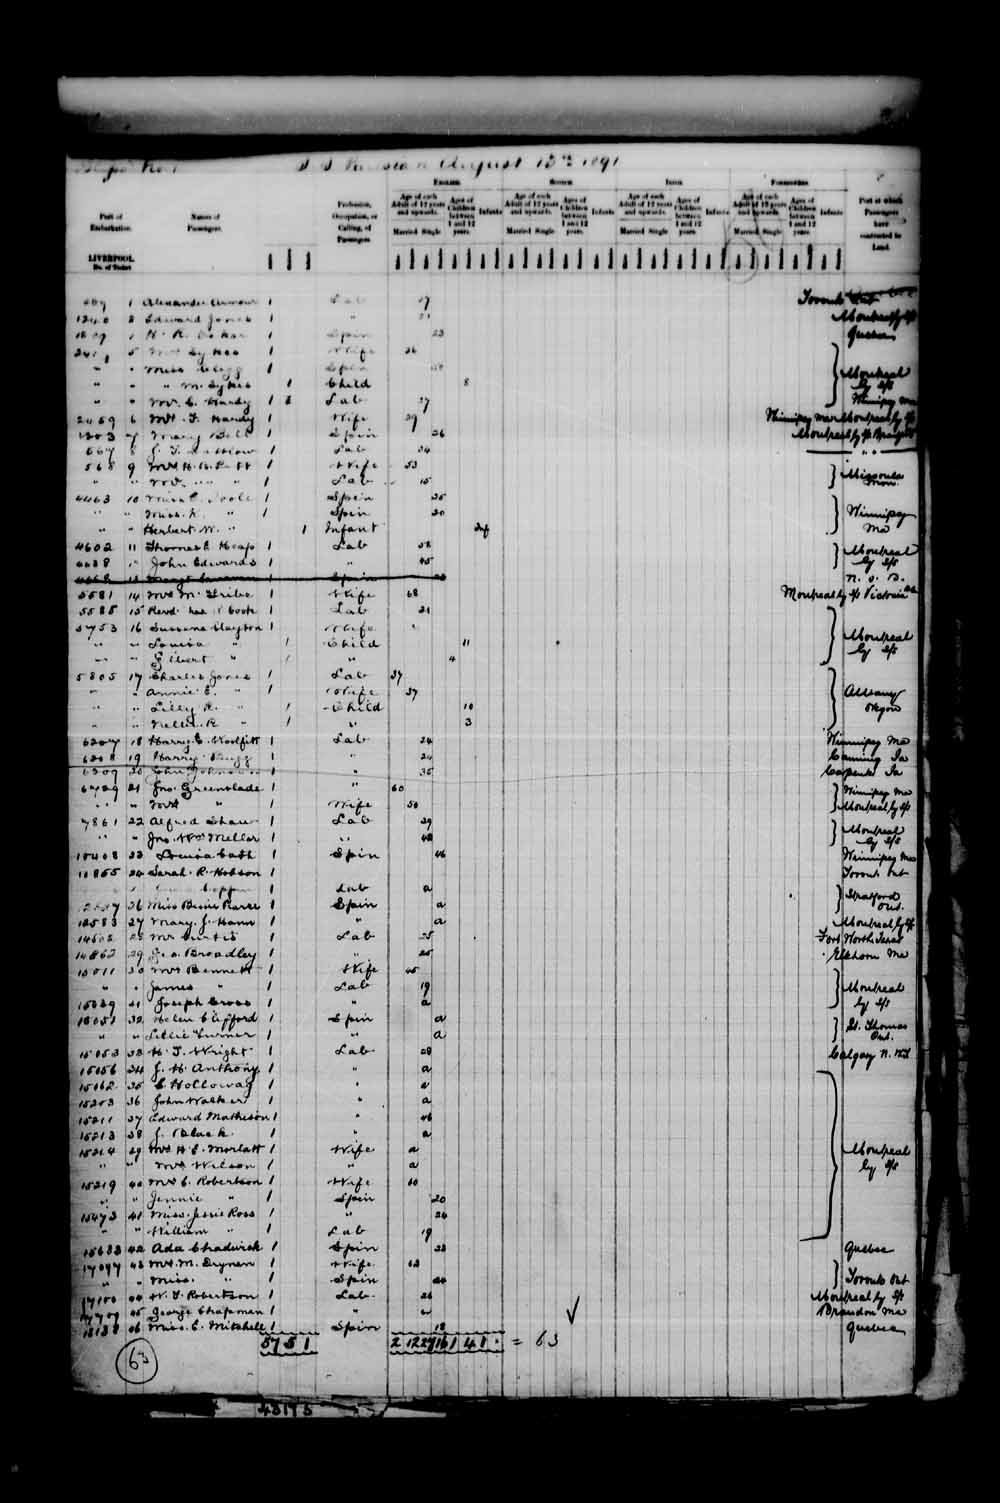 Item: Passenger lists of the PARISIAN arriving in Quebec